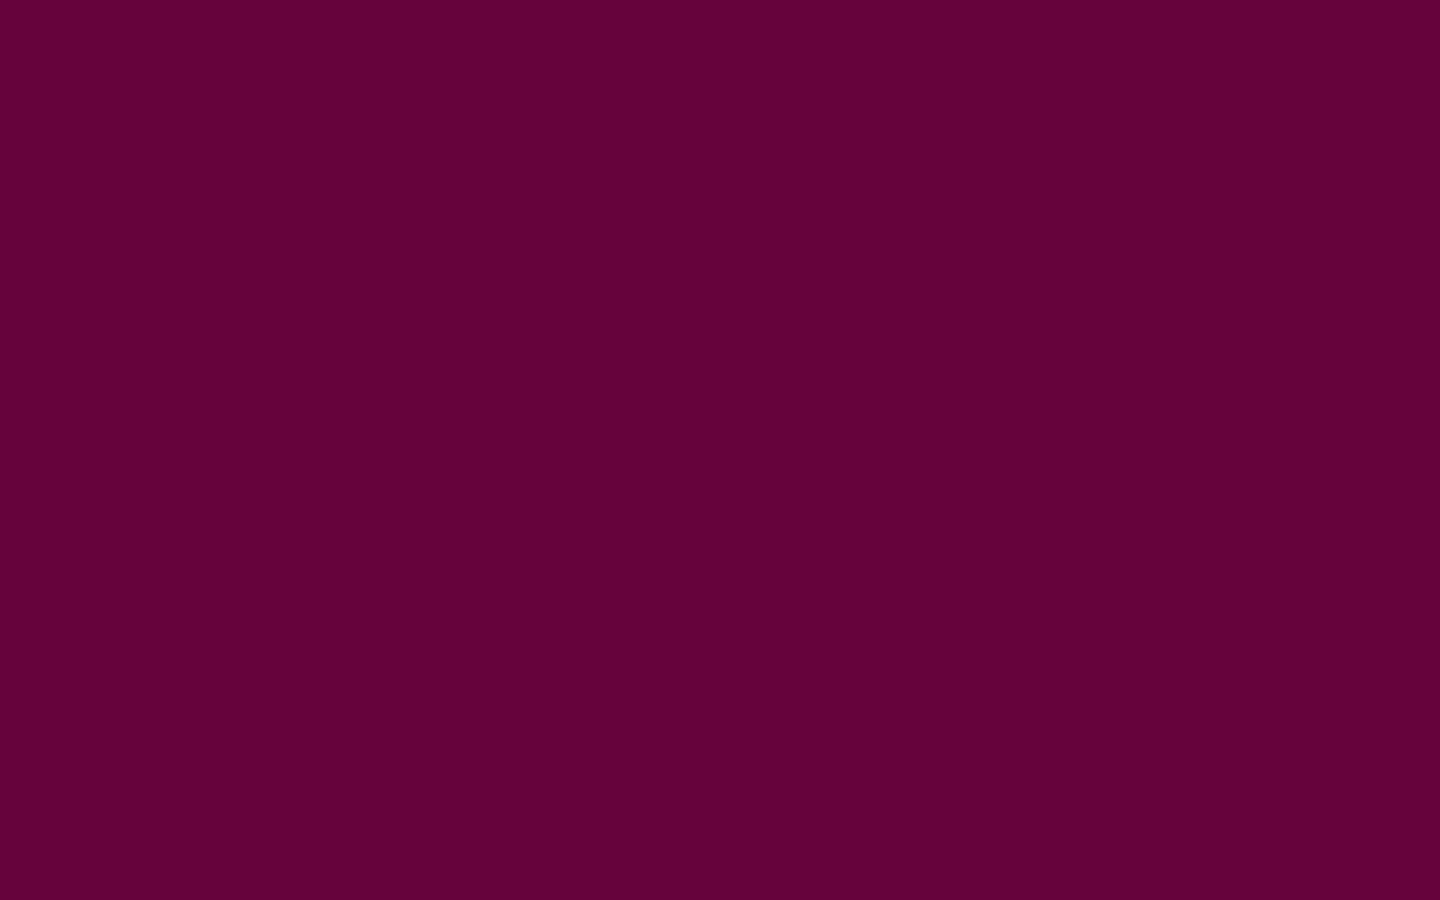 1440x900 Imperial Purple Solid Color Background